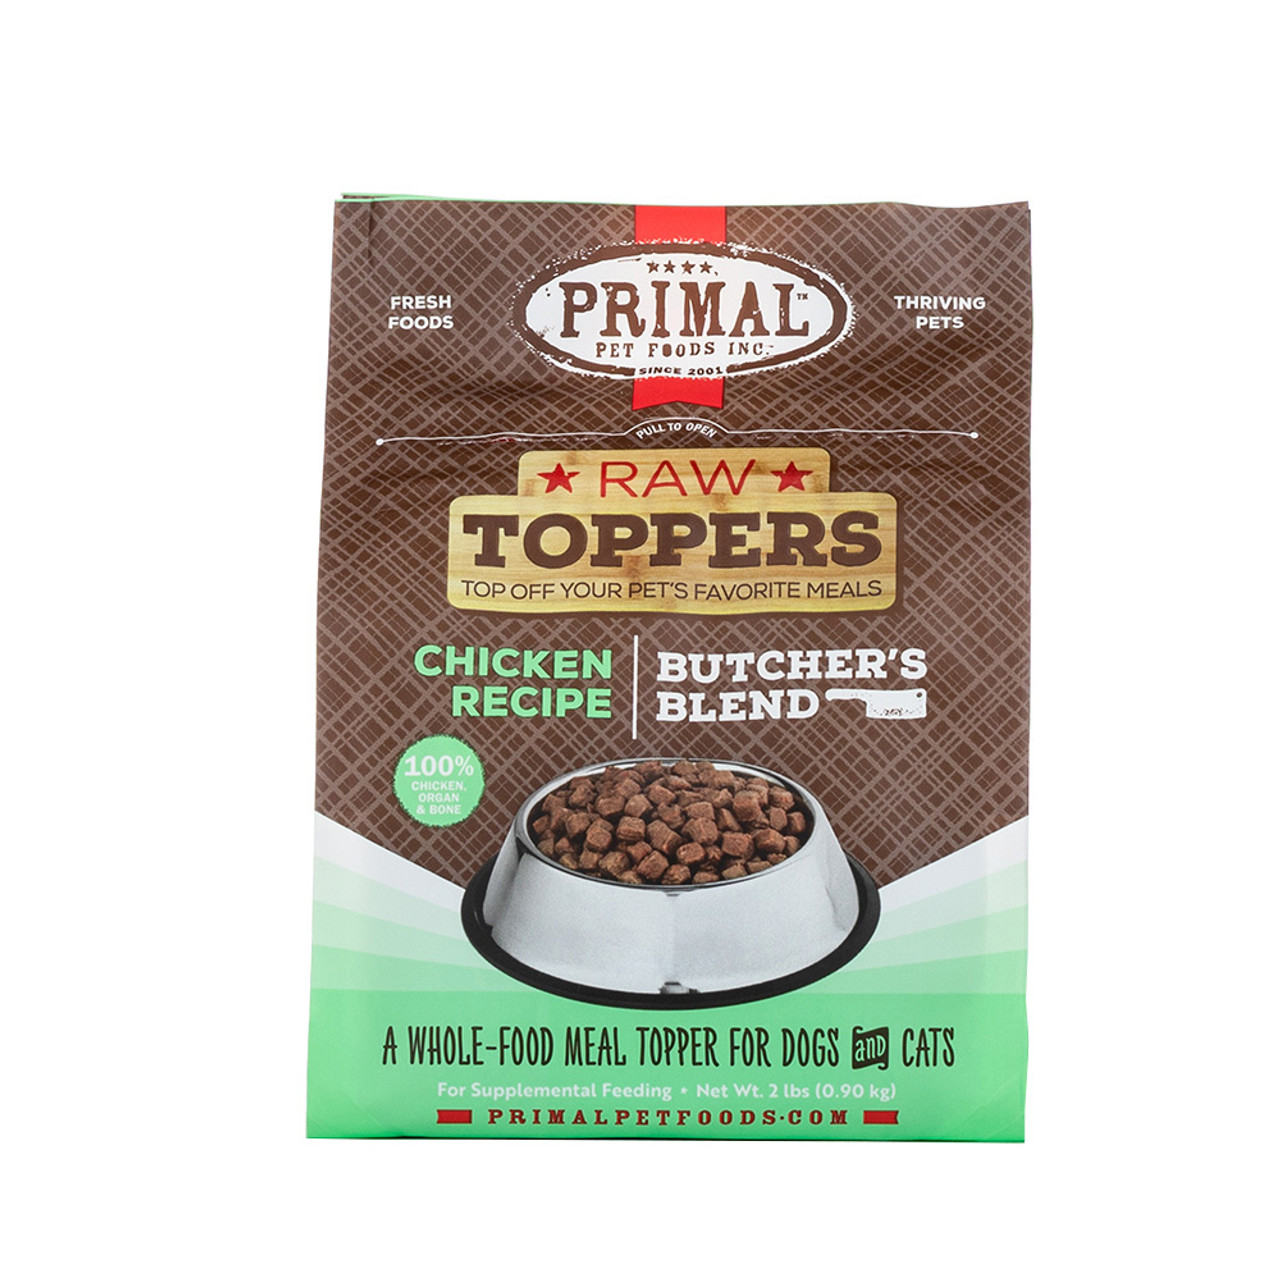 Raw Toppers Butcher's Blend Chicken Recipe Frozen Meal Topper for Dogs & Cats